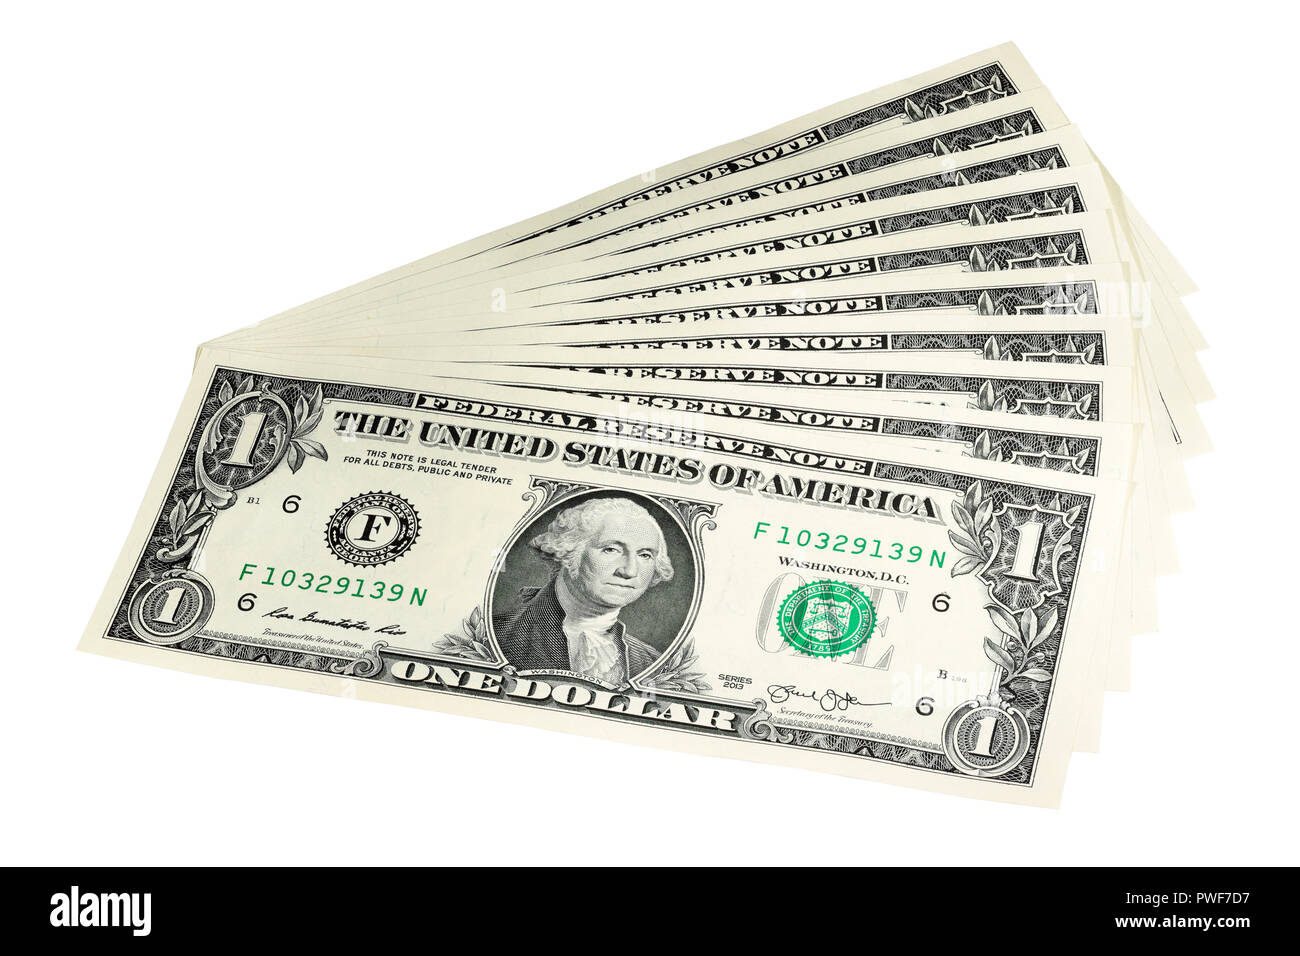 A Fan of $1 Bills isolated on a white background - Stock Image